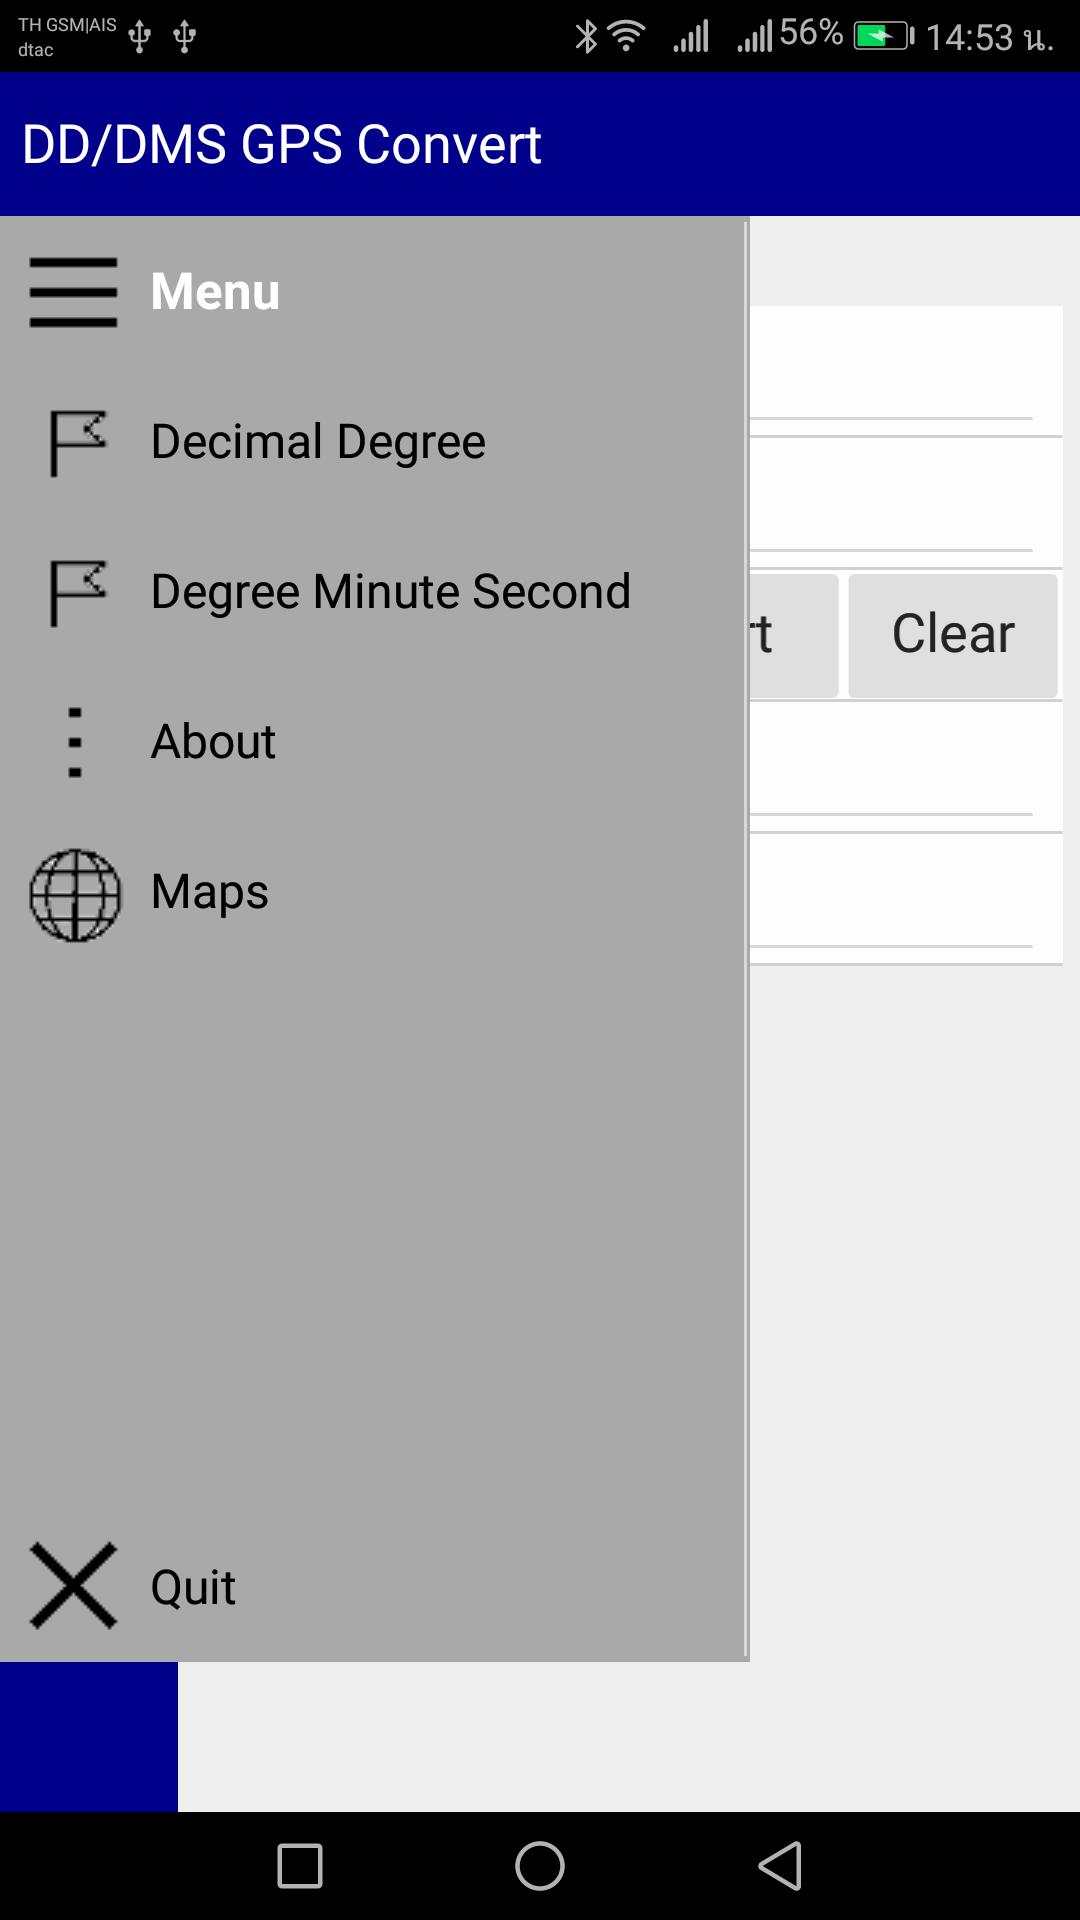 DD-DMS GPS Convert for Android - APK Download